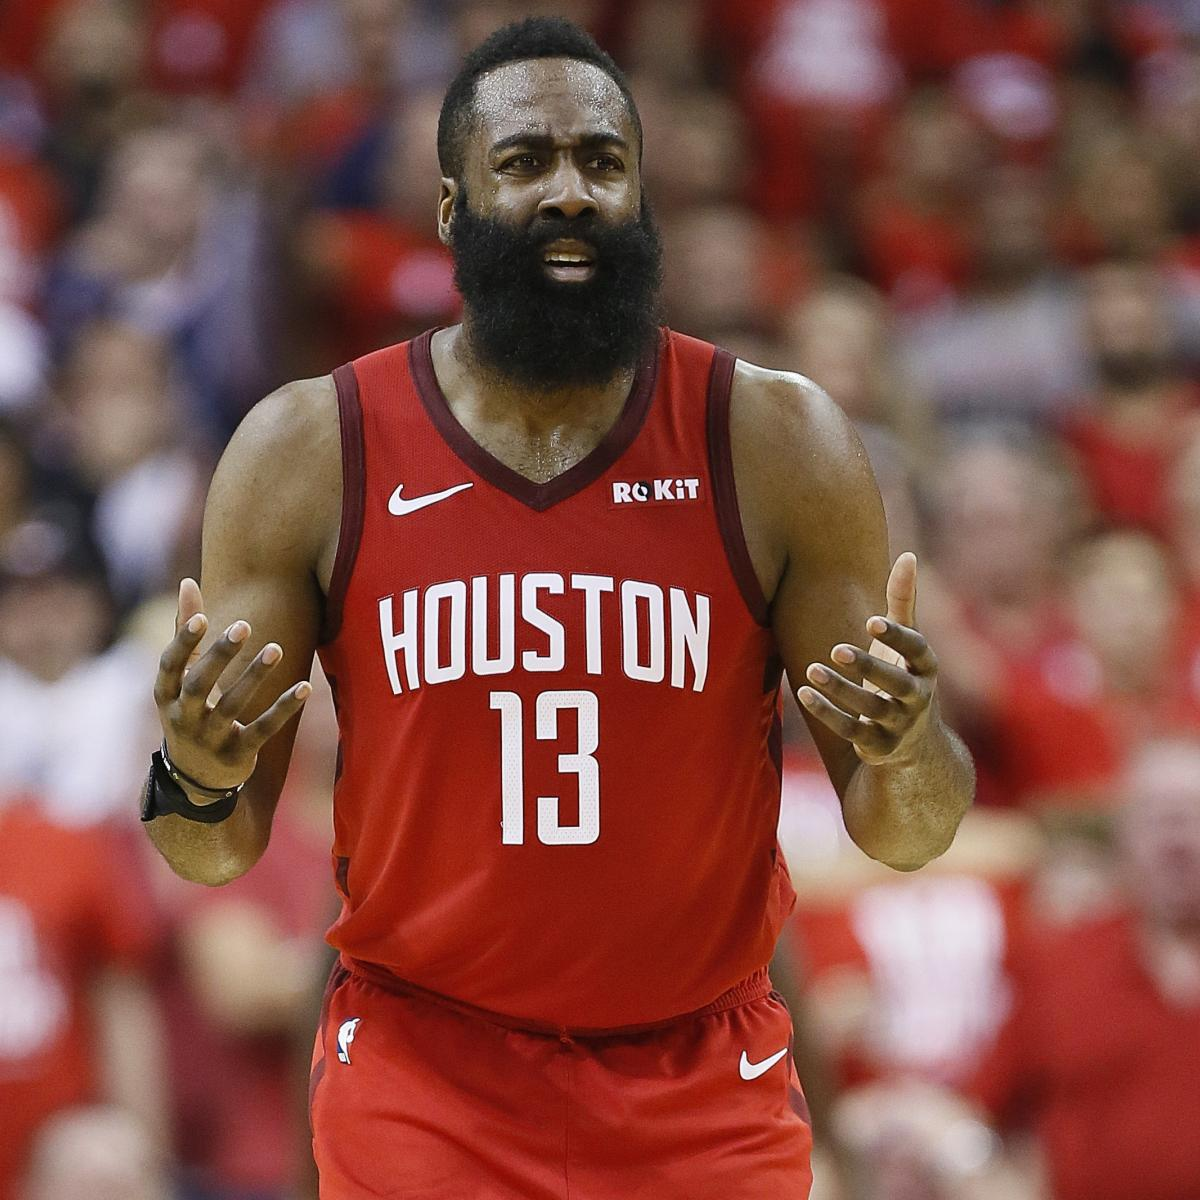 James Harden Latest News: Rockets Rumors: James Harden's Trainer Irv Roland Fired As